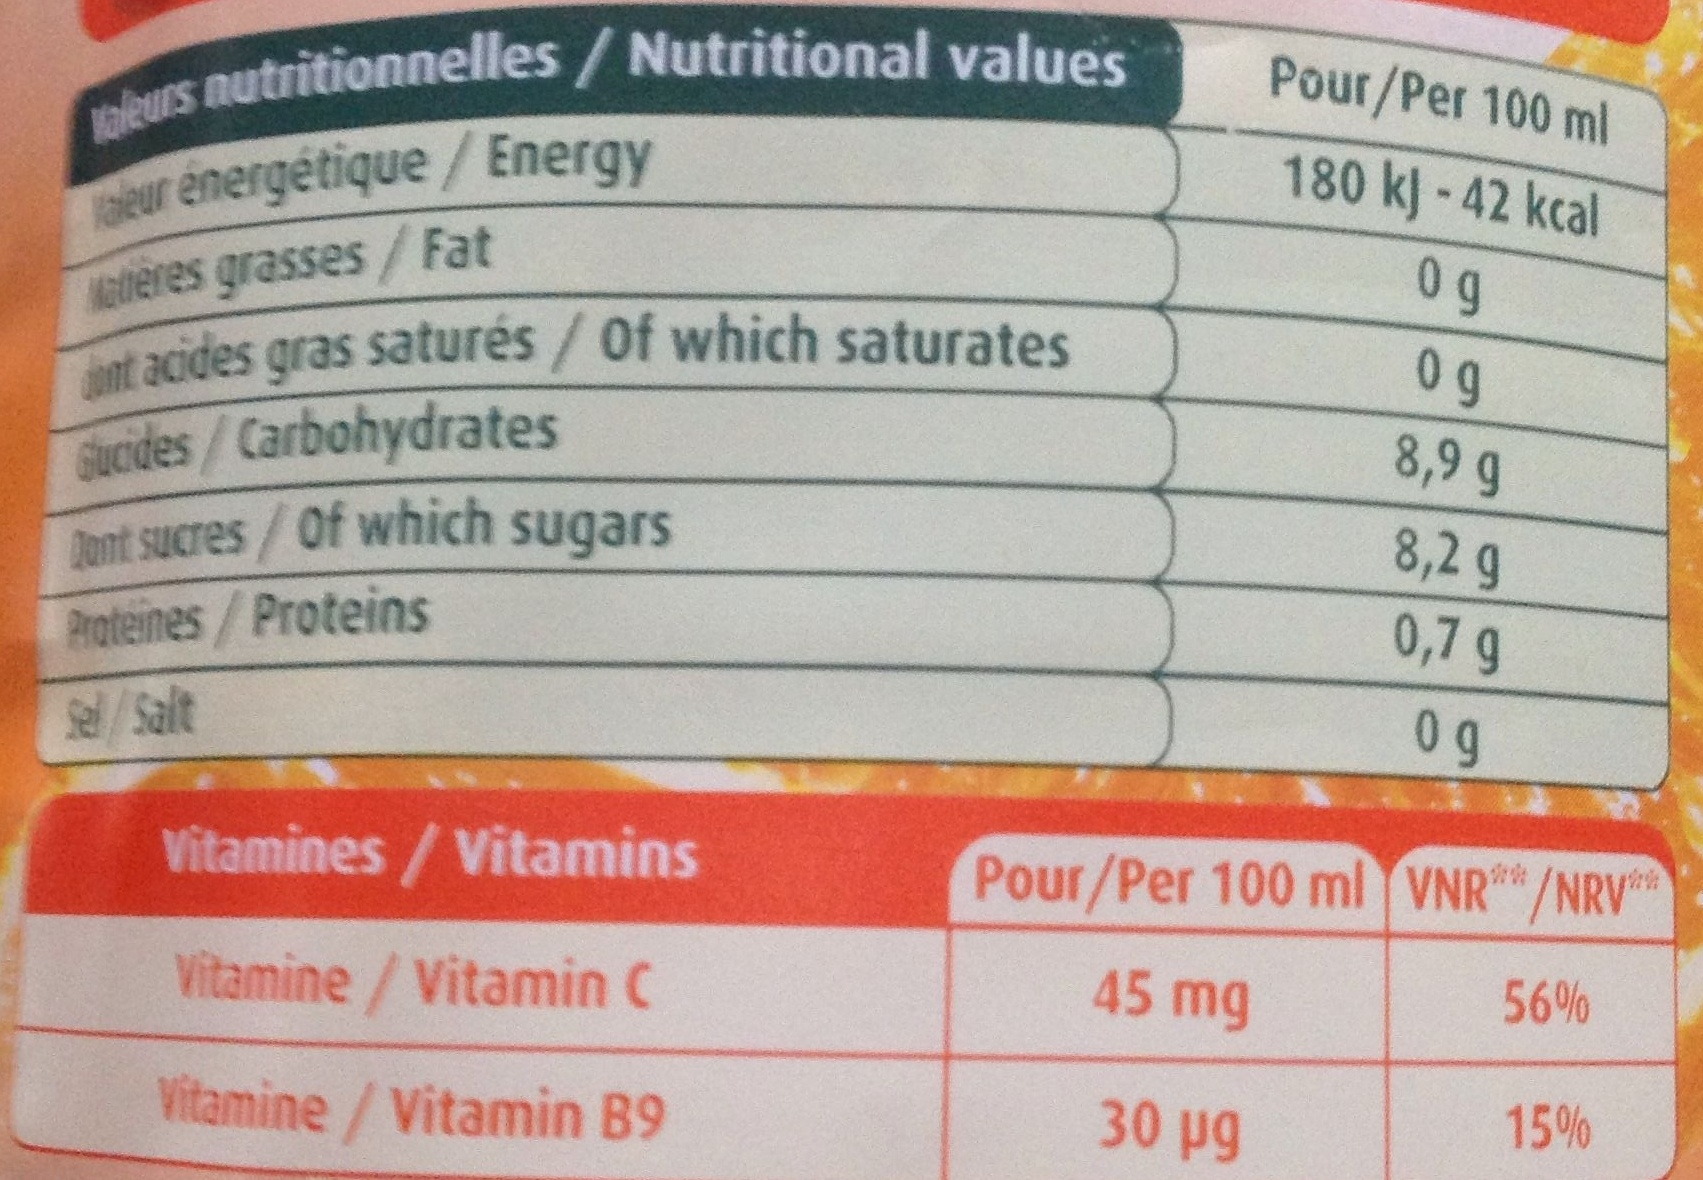 Le Fruit - Orange sans pulpe - Nutrition facts - fr